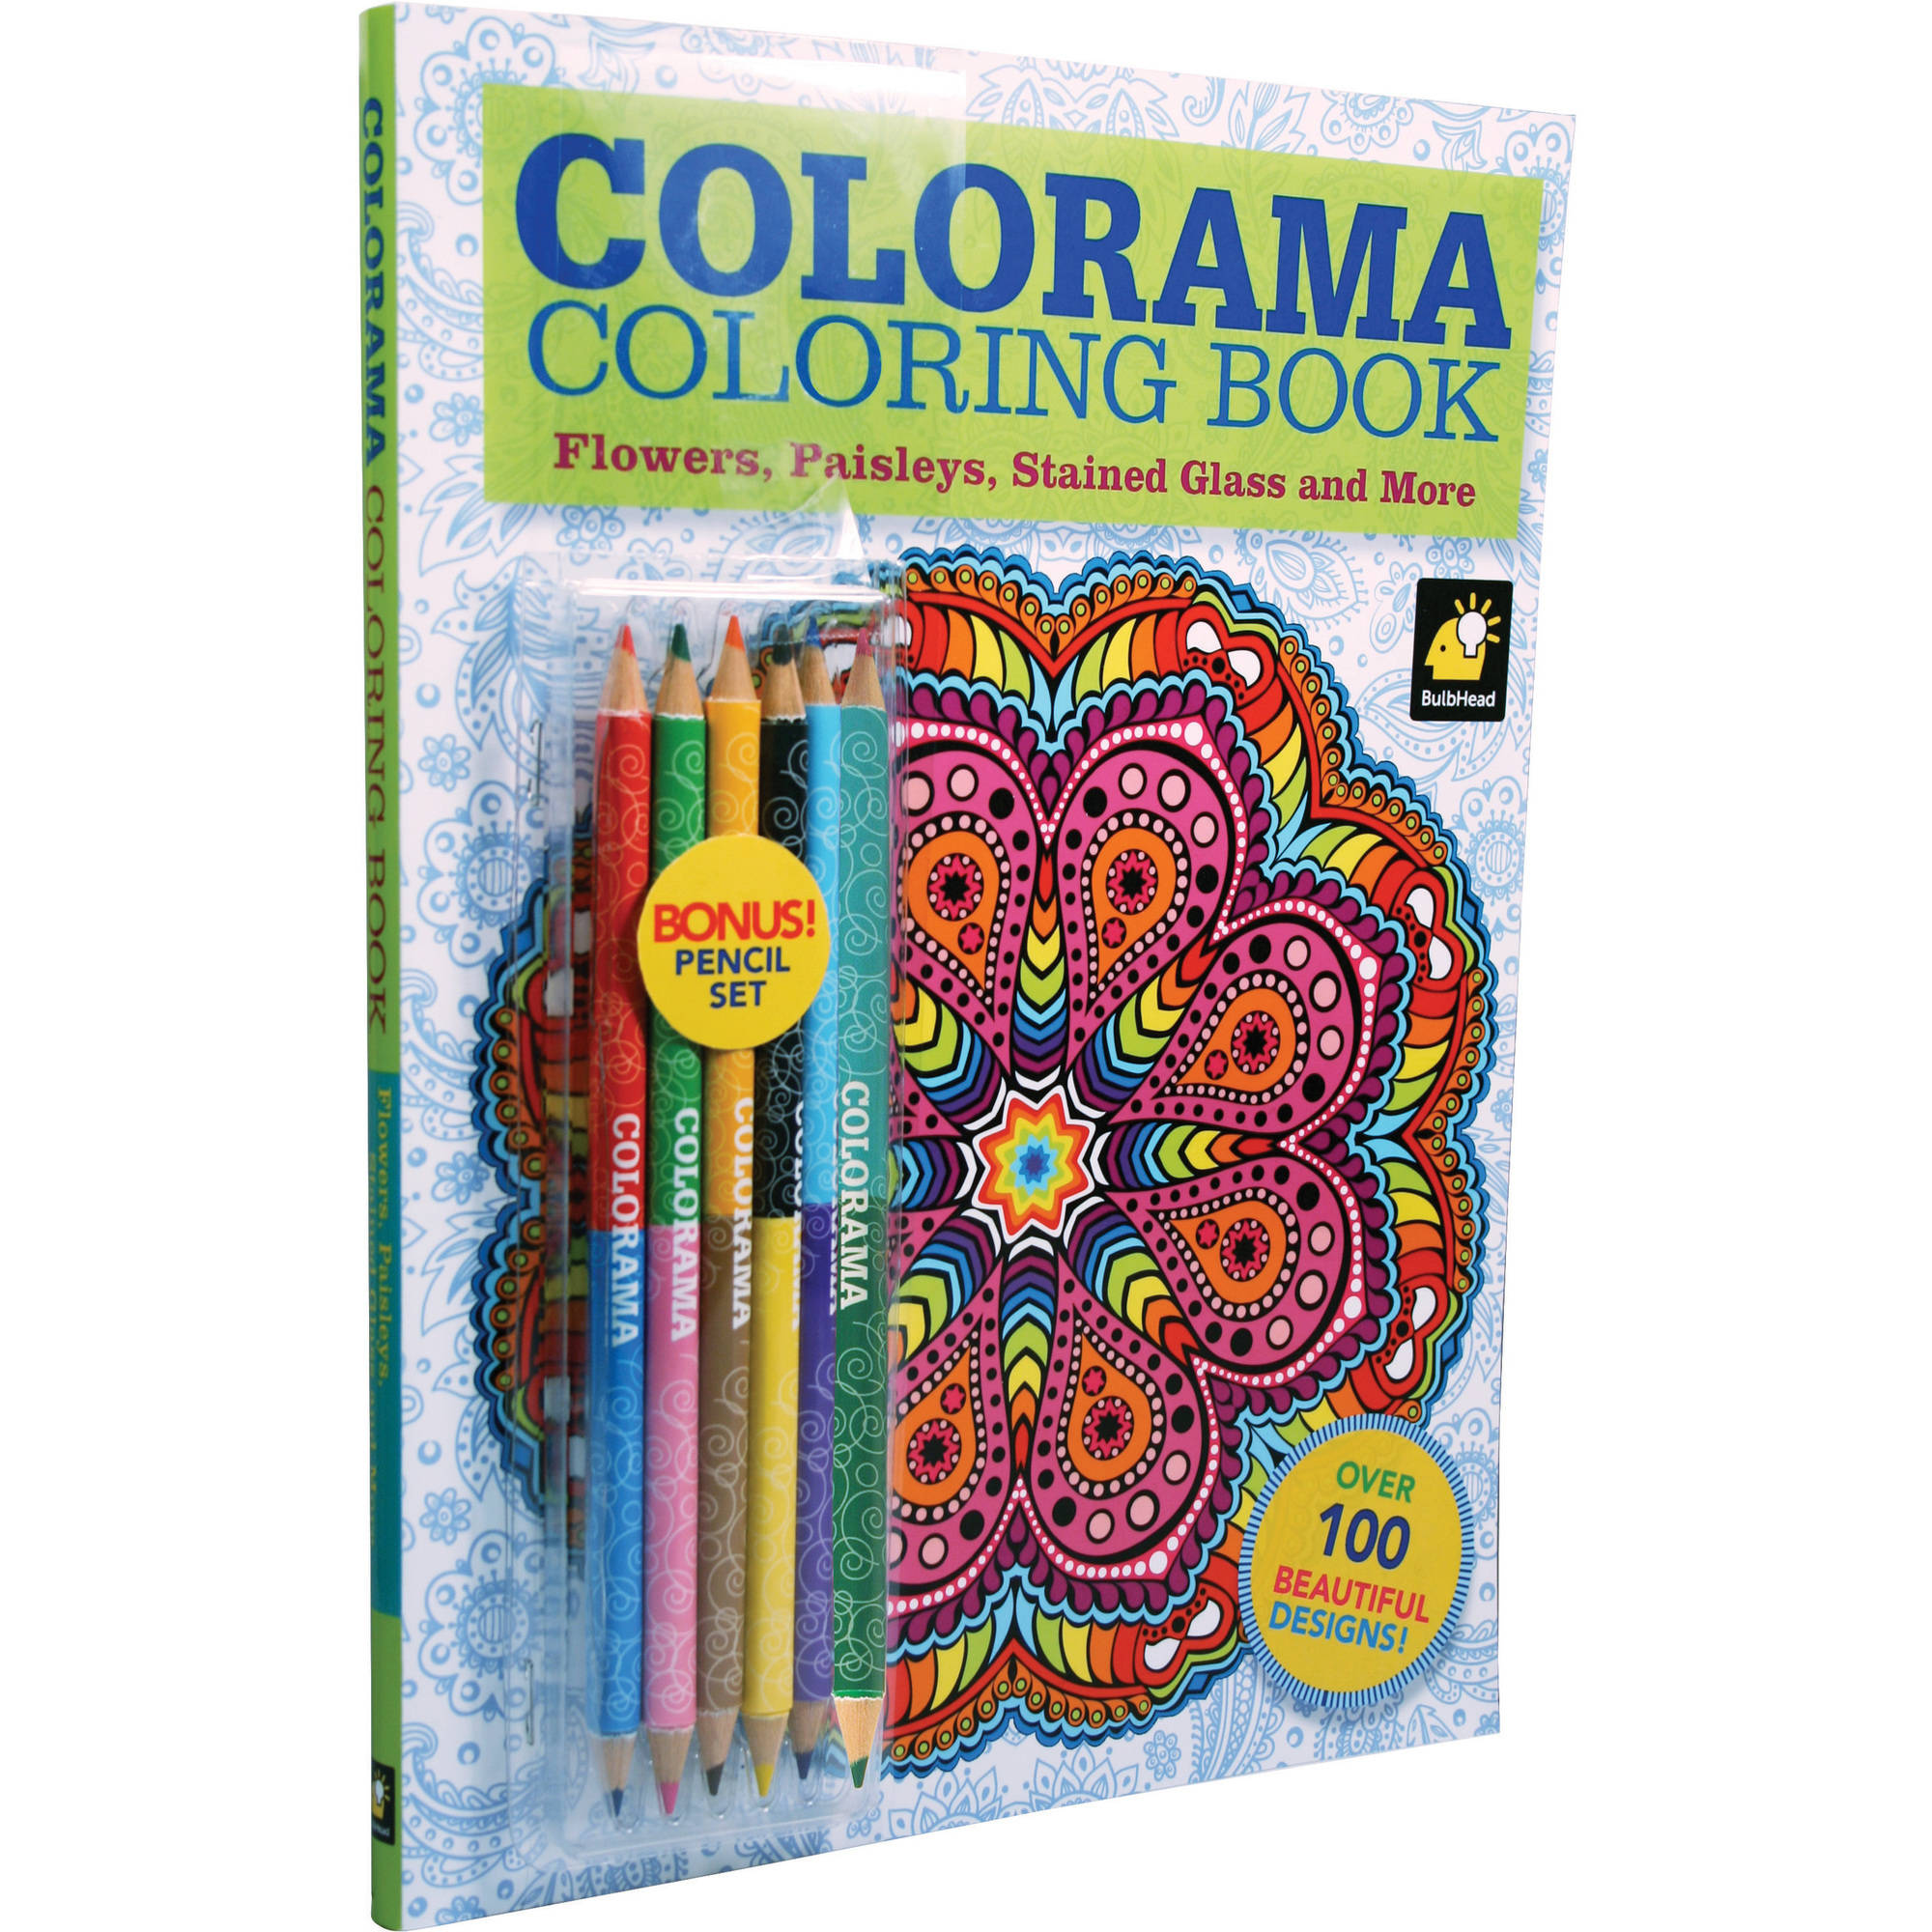 as seen on tv colorama coloring book walmartcom